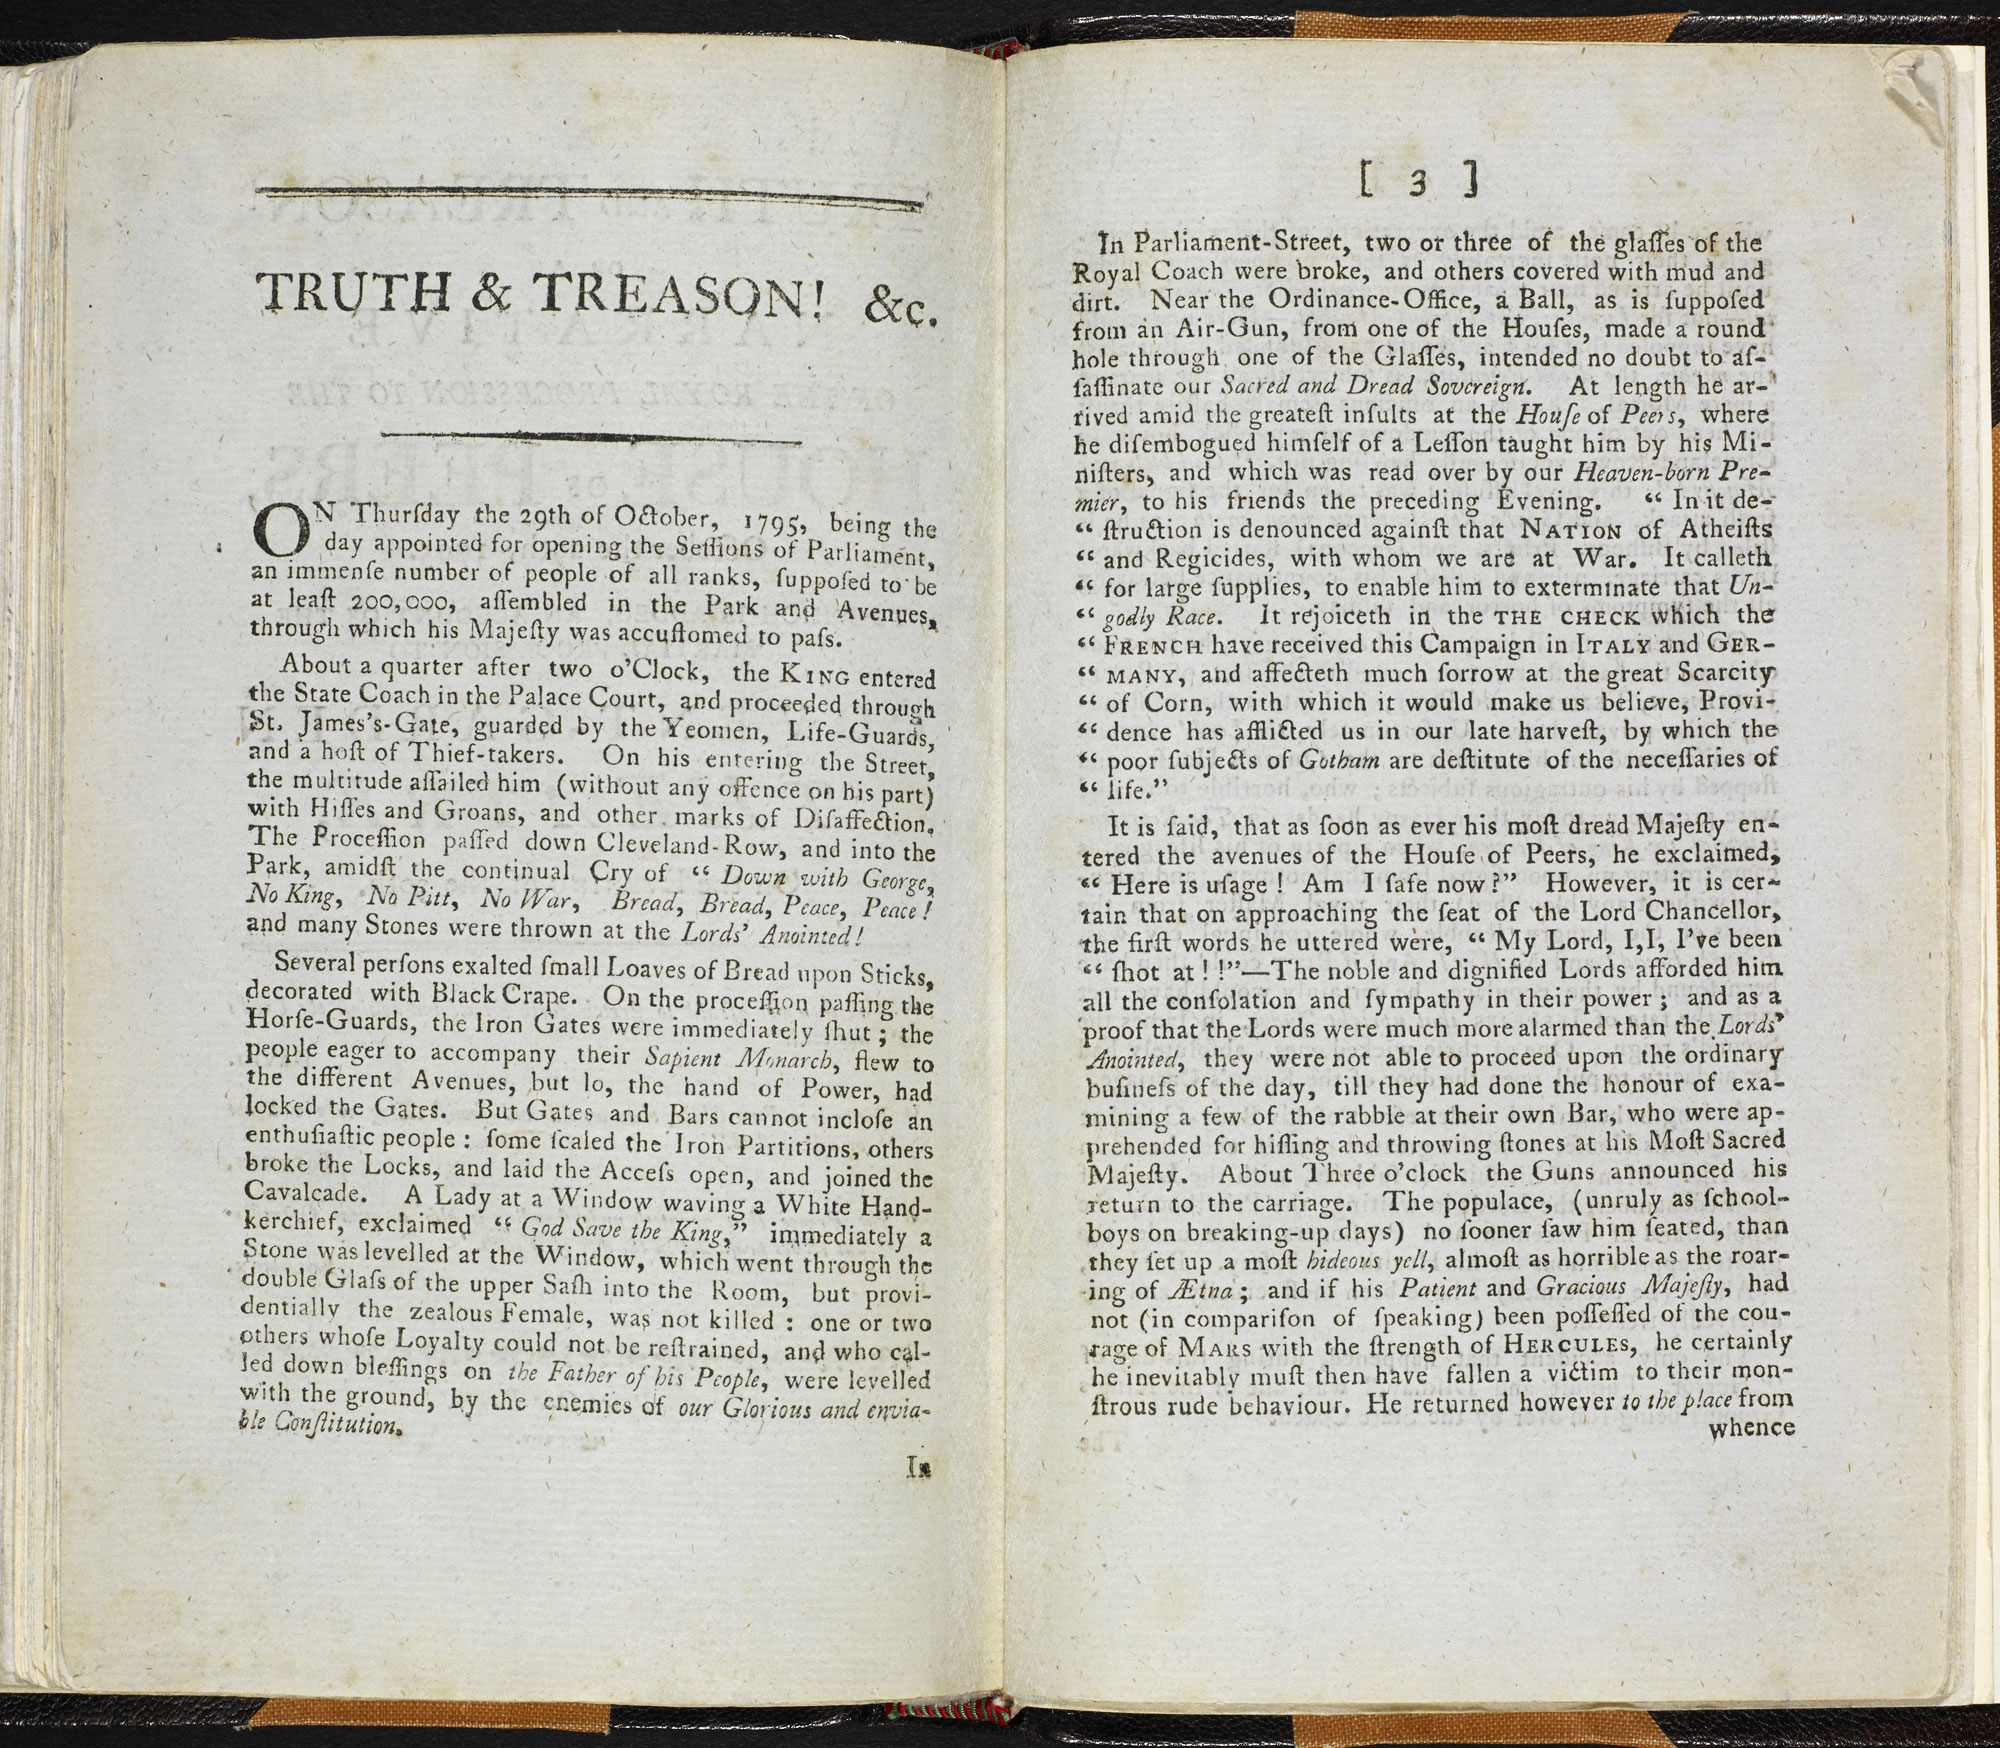 Truth and treason! or a narrative of the royal procession to the House of Peers, October the 29th, 1795 [page:2-3]